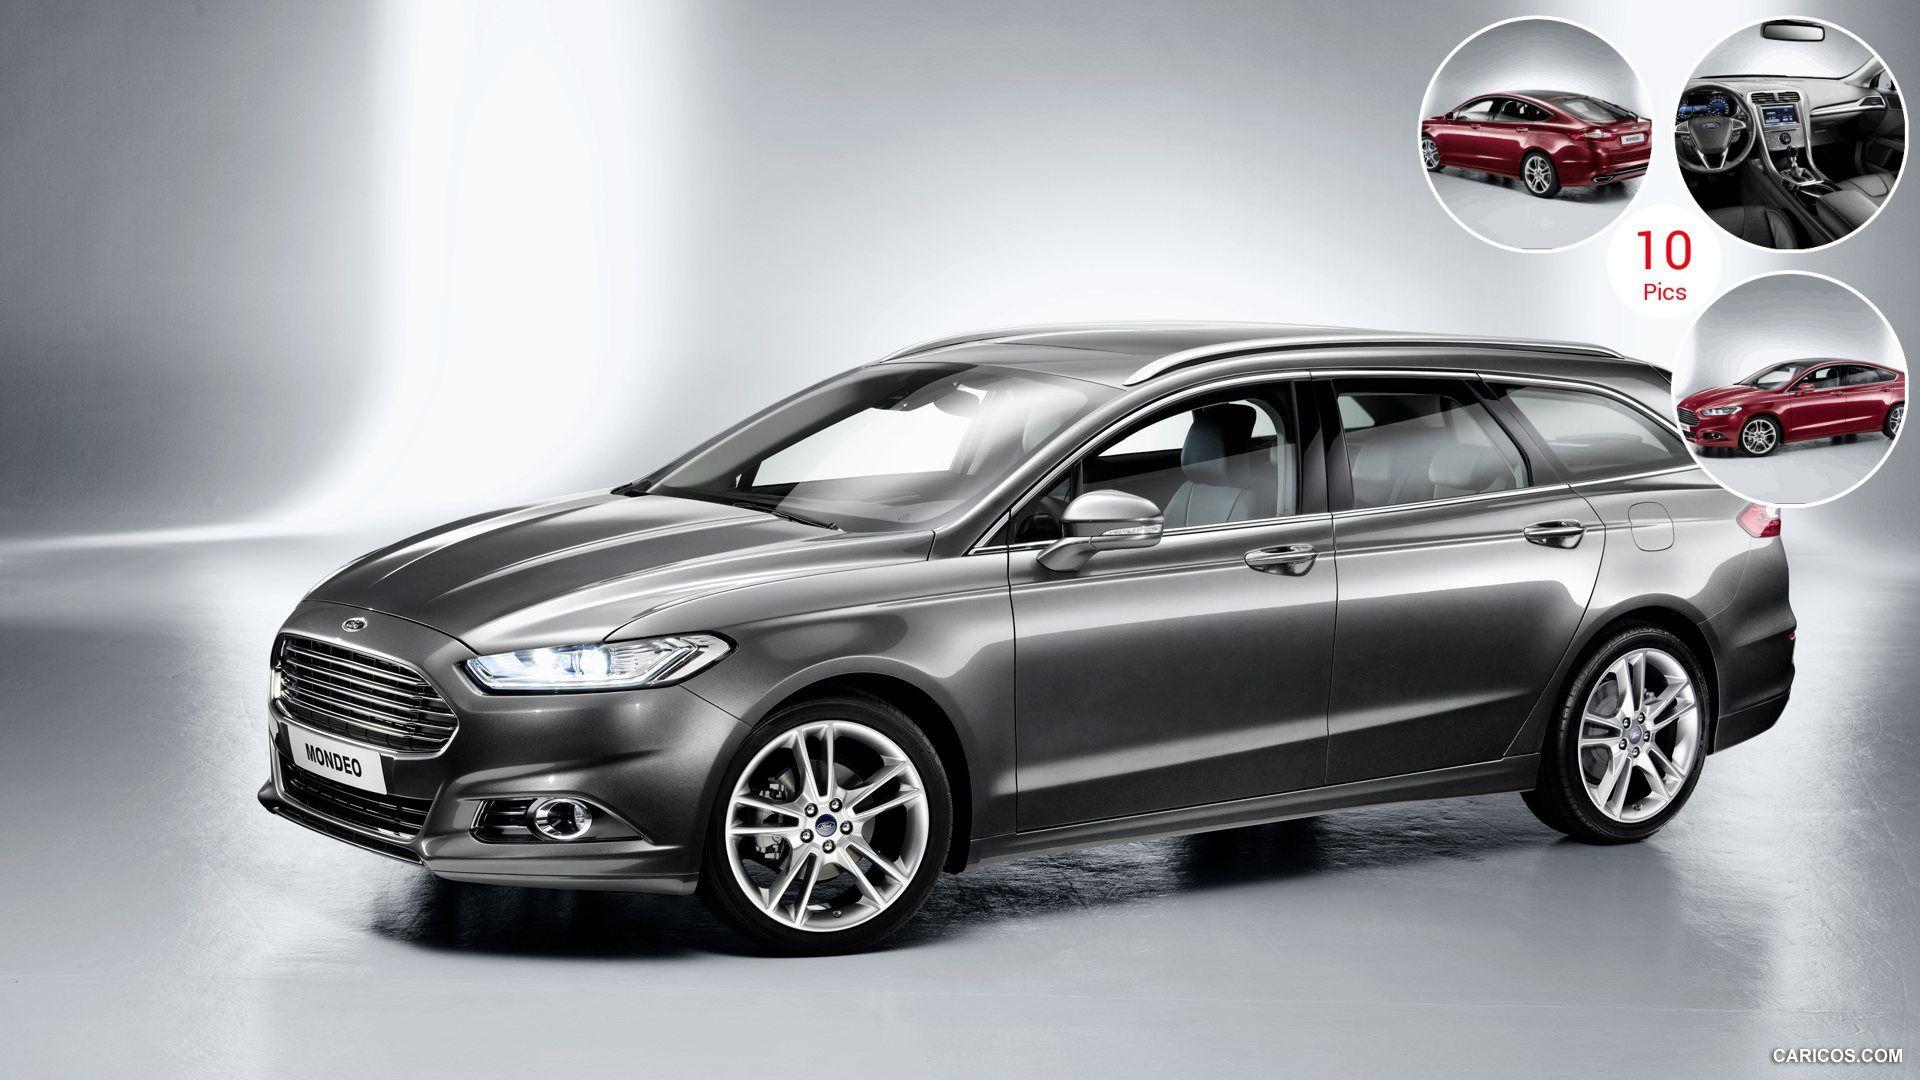 2013 Ford Mondeo 5